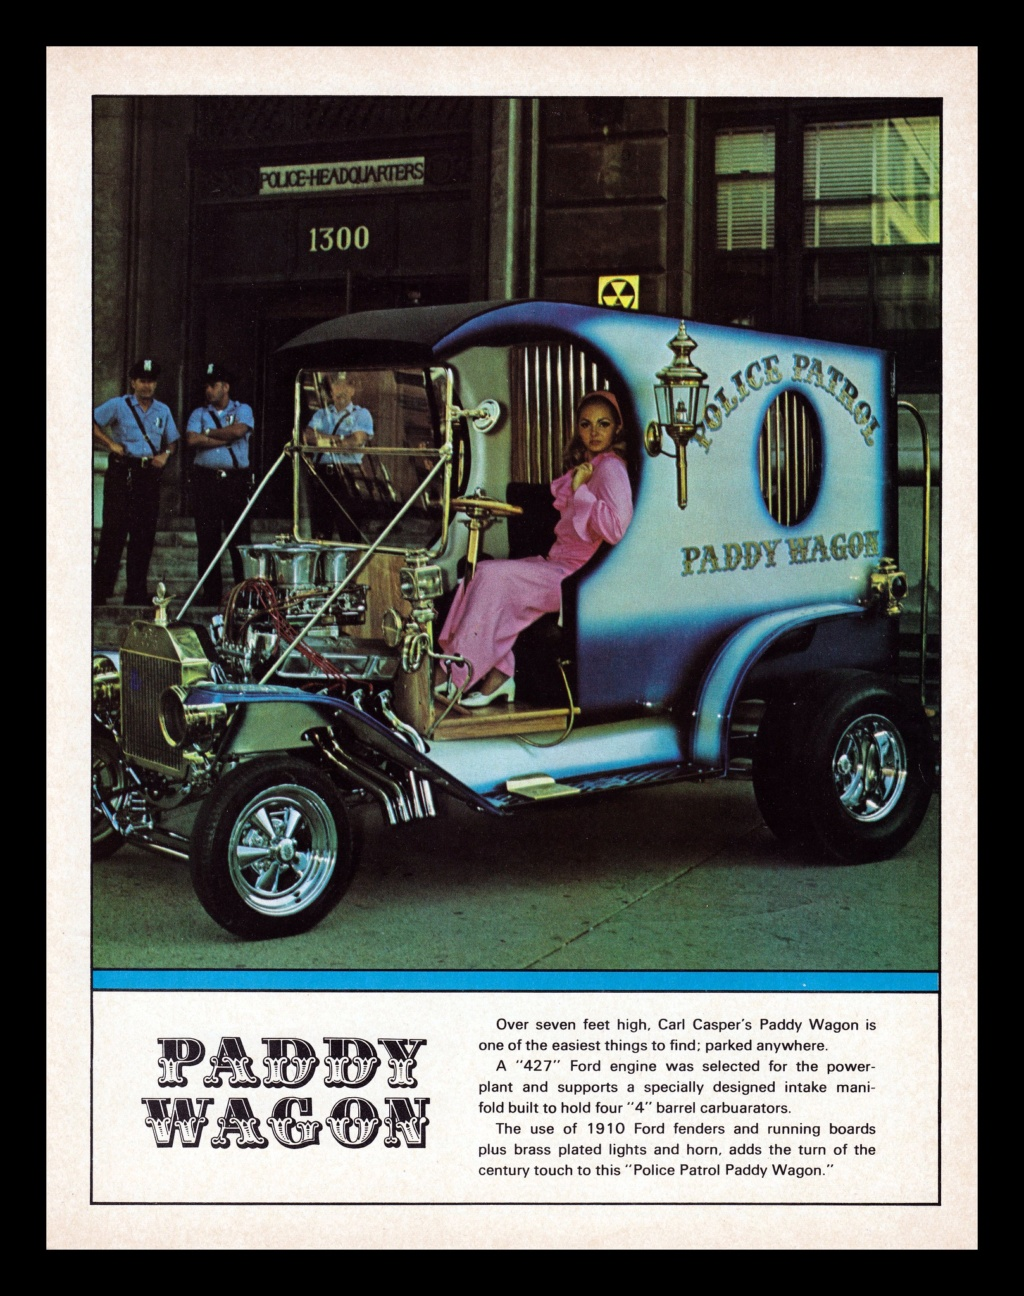 Hot Rod Show World Program, 1970 71745813